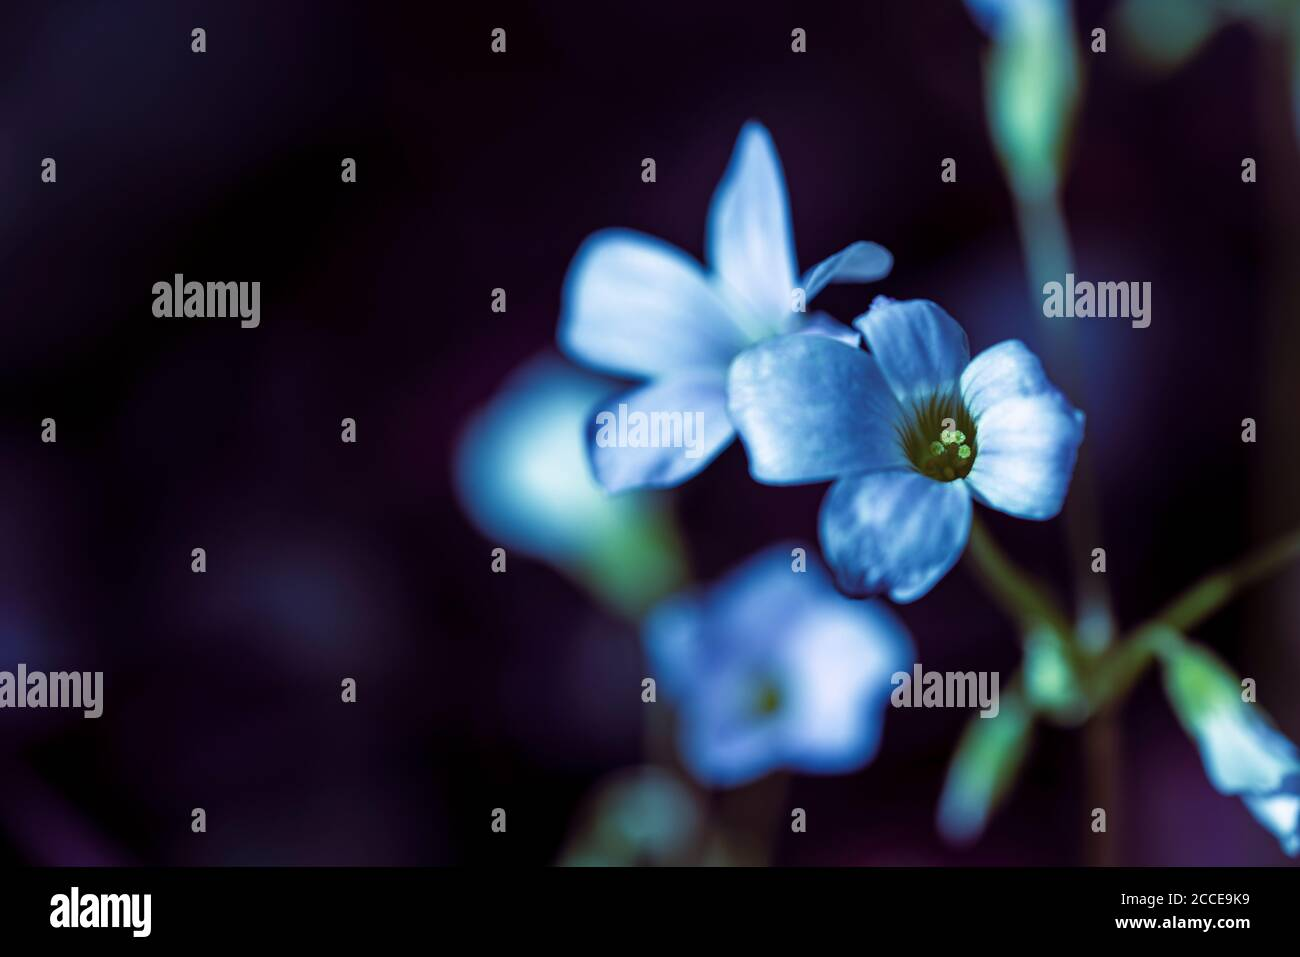 Close Up, Nature, Garden, Flower, Growth, Abstract, Stock Photo